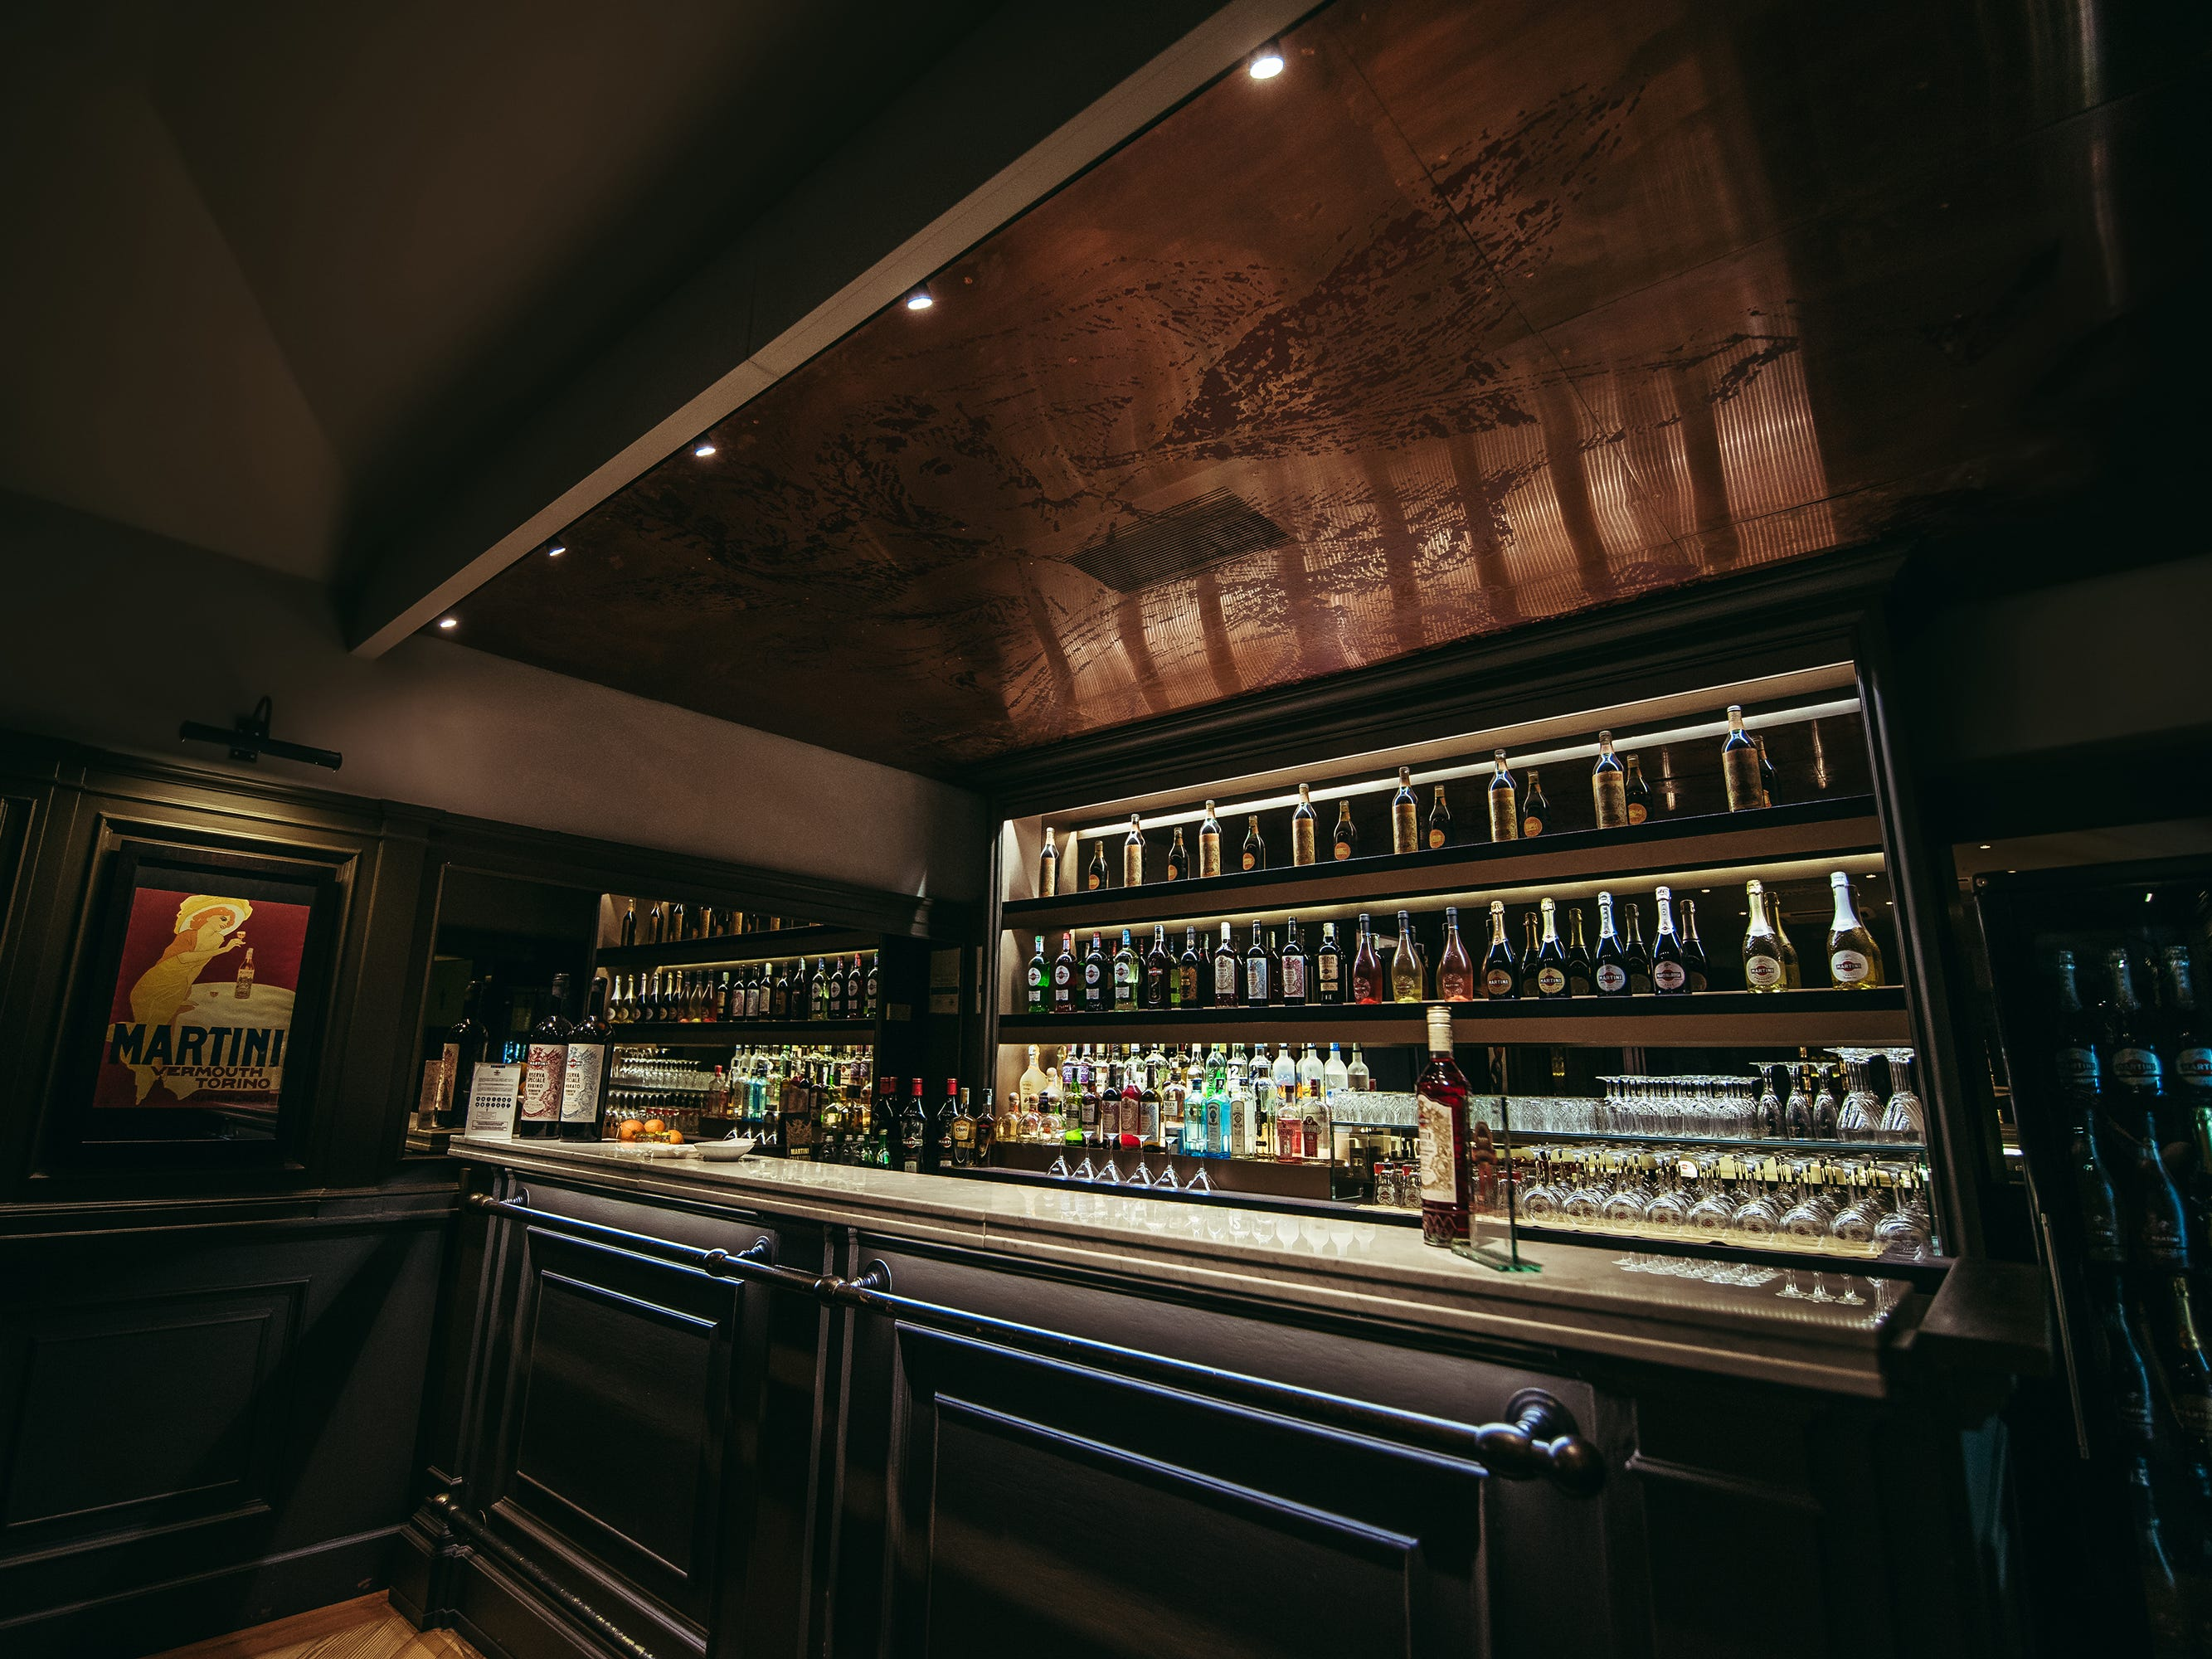 The visitors center boasts a number of event spaces, including a loaded back-room bar stocked with the full Martini portfolio, as well as brand siblings from Bacardi.